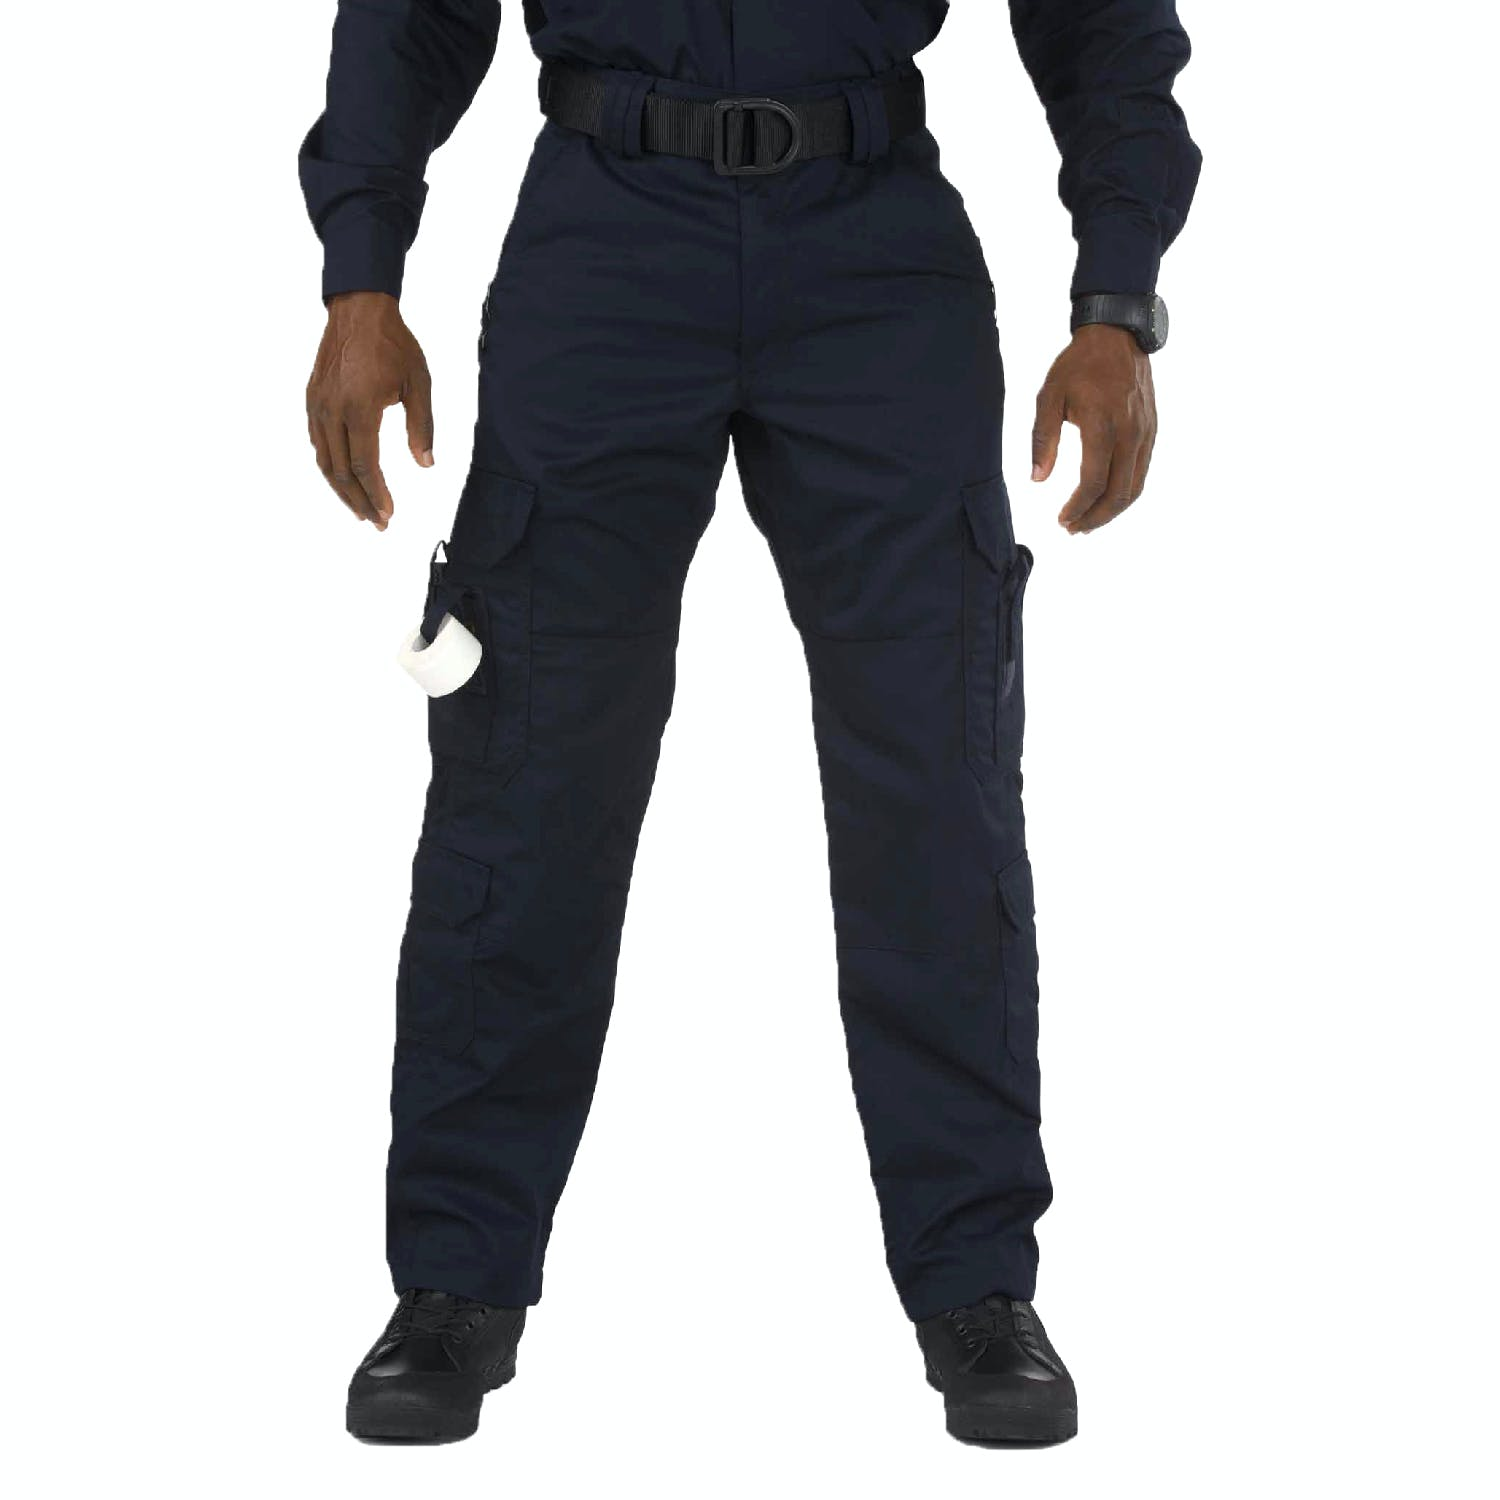 5 11 Tactical Ems Pant From Nightgear Uk